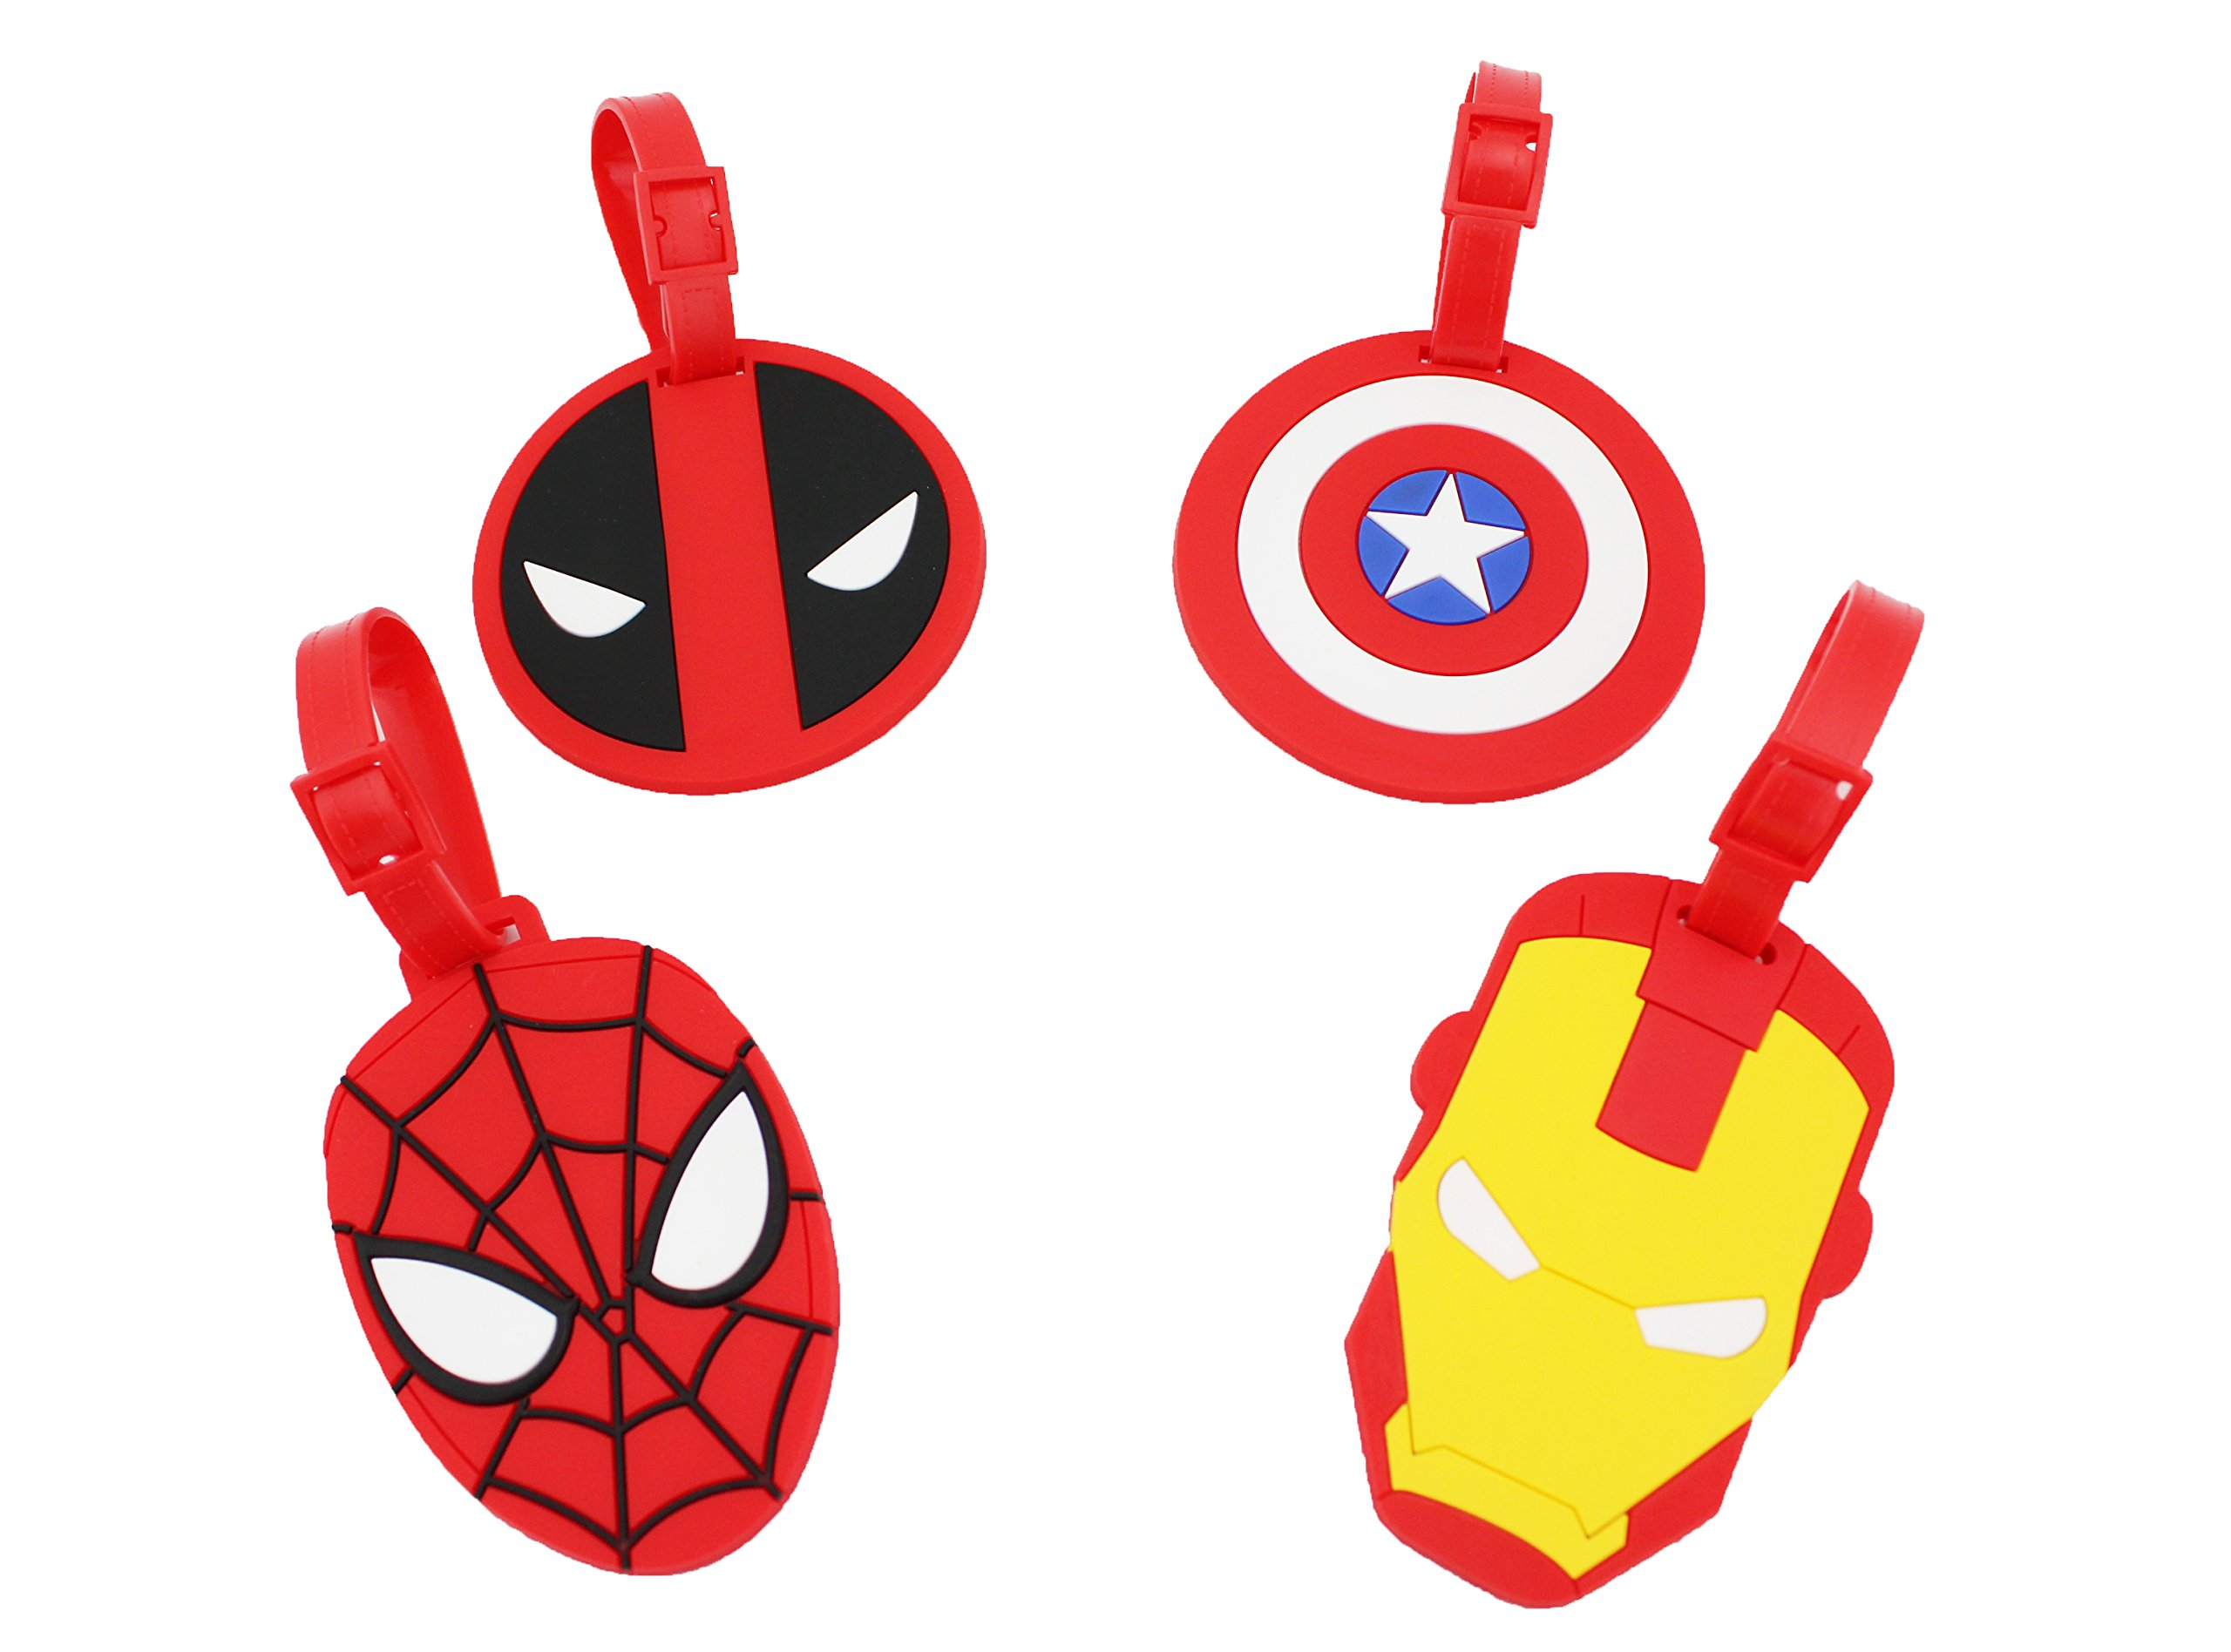 Finex Set of 4 Avengers Deadpool Travel Luggage ID Tag for Bags Suitcases